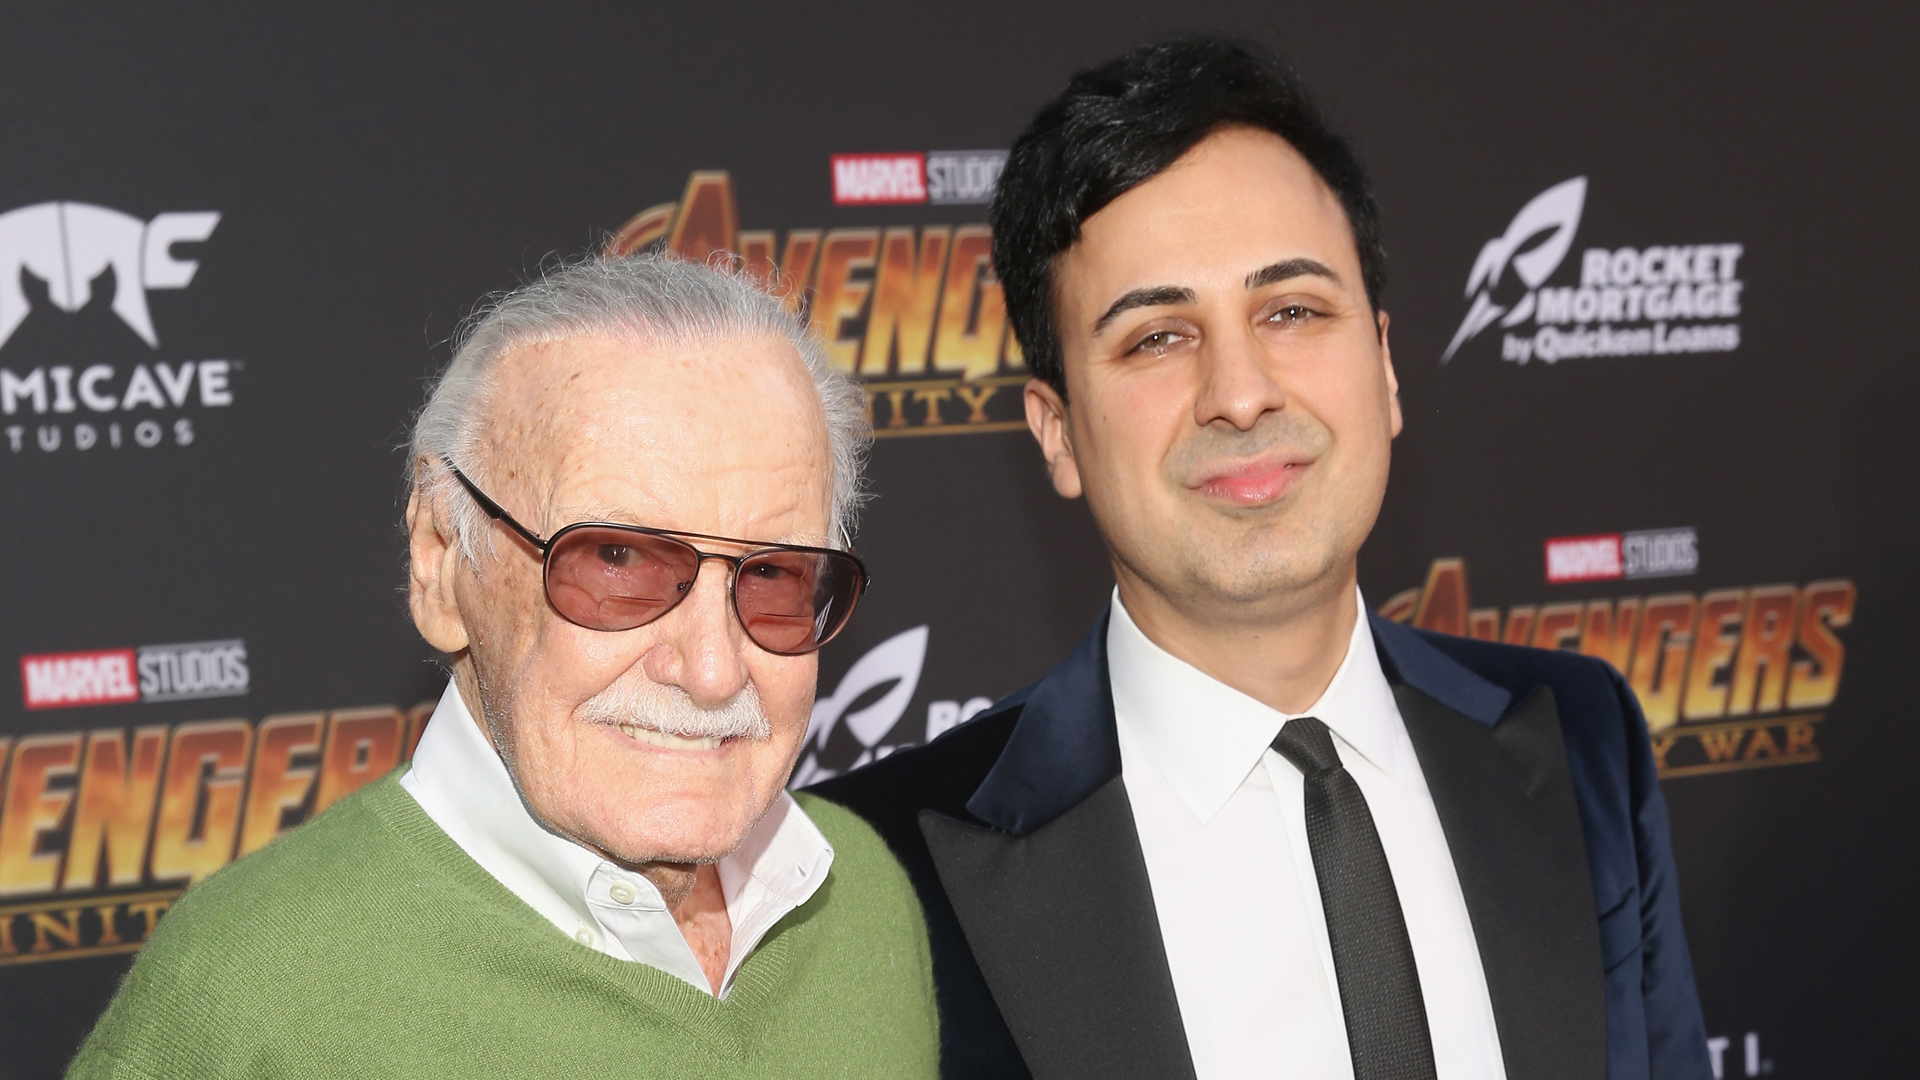 Stan Lee and Keya Morgan attend the Los Angeles Premiere of Avengers: Infinity War on April 23, 2018, in Hollywood. (Credit: Jesse Grant/Getty Images for Disney)